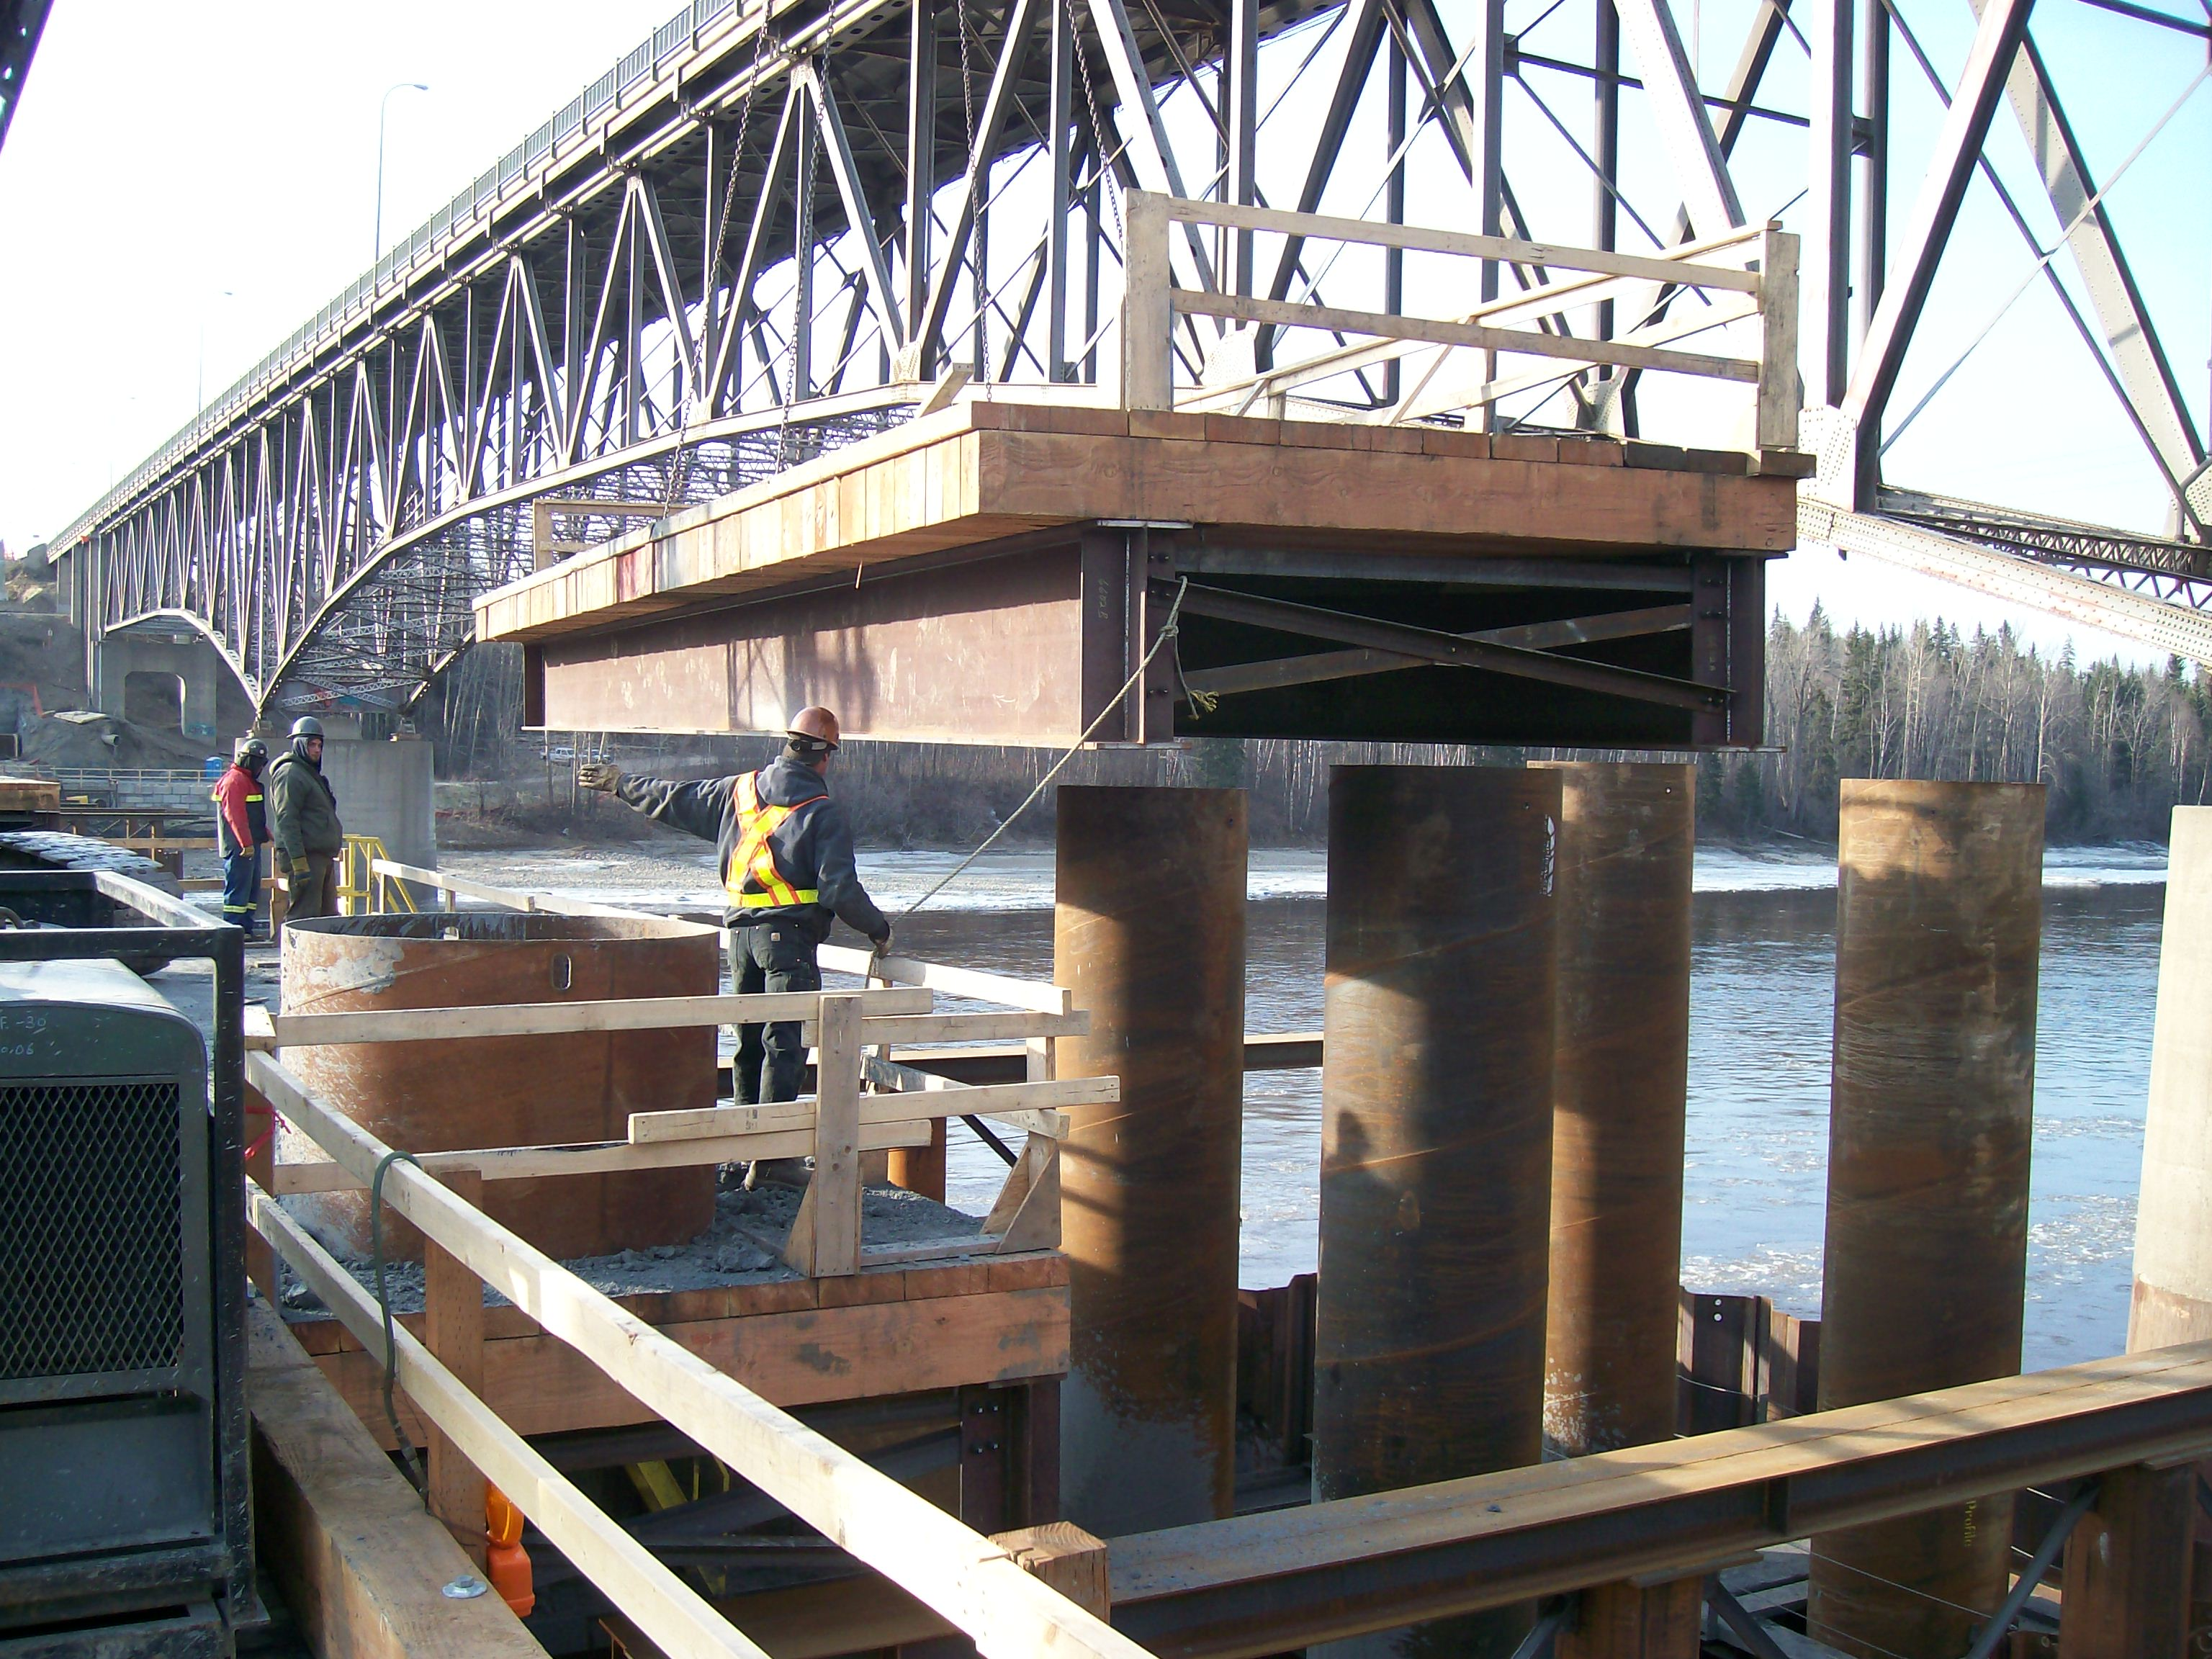 Portable Bridge Construction : Temporary access and work bridges construction drilling